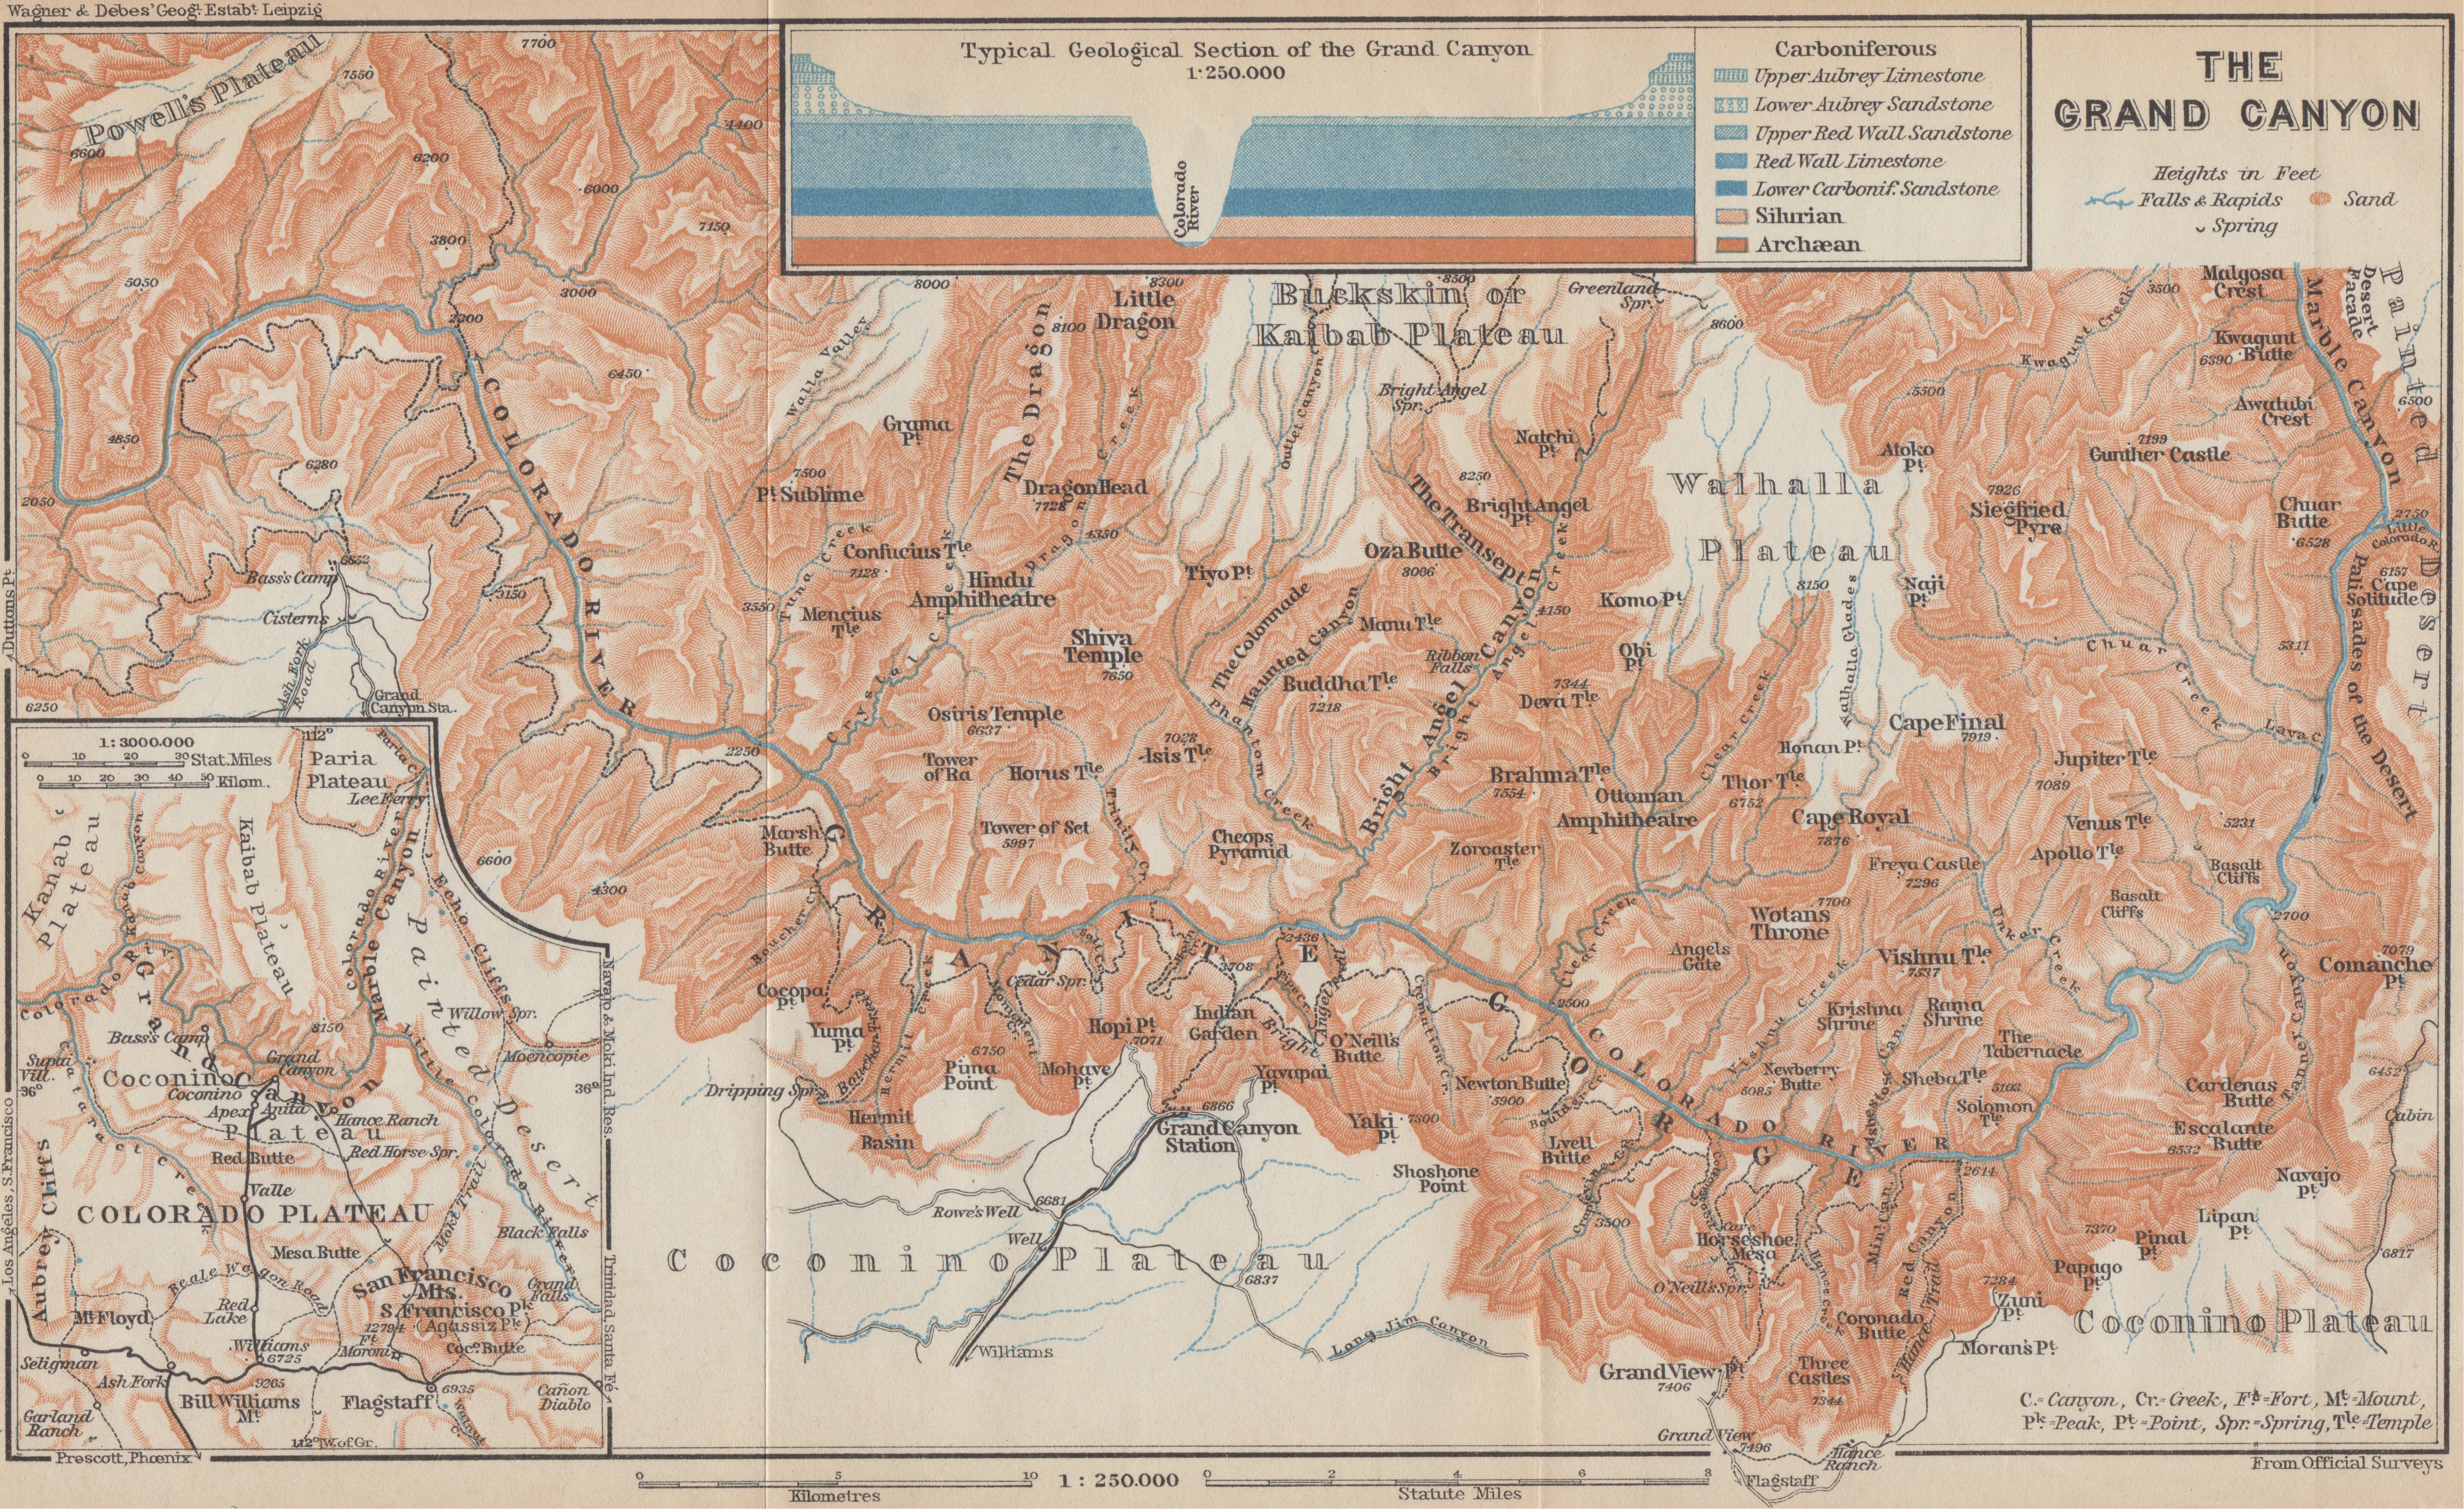 1909 city map of the Grand Canyon, USA, from Baedeker's United States Handbook for Travellers